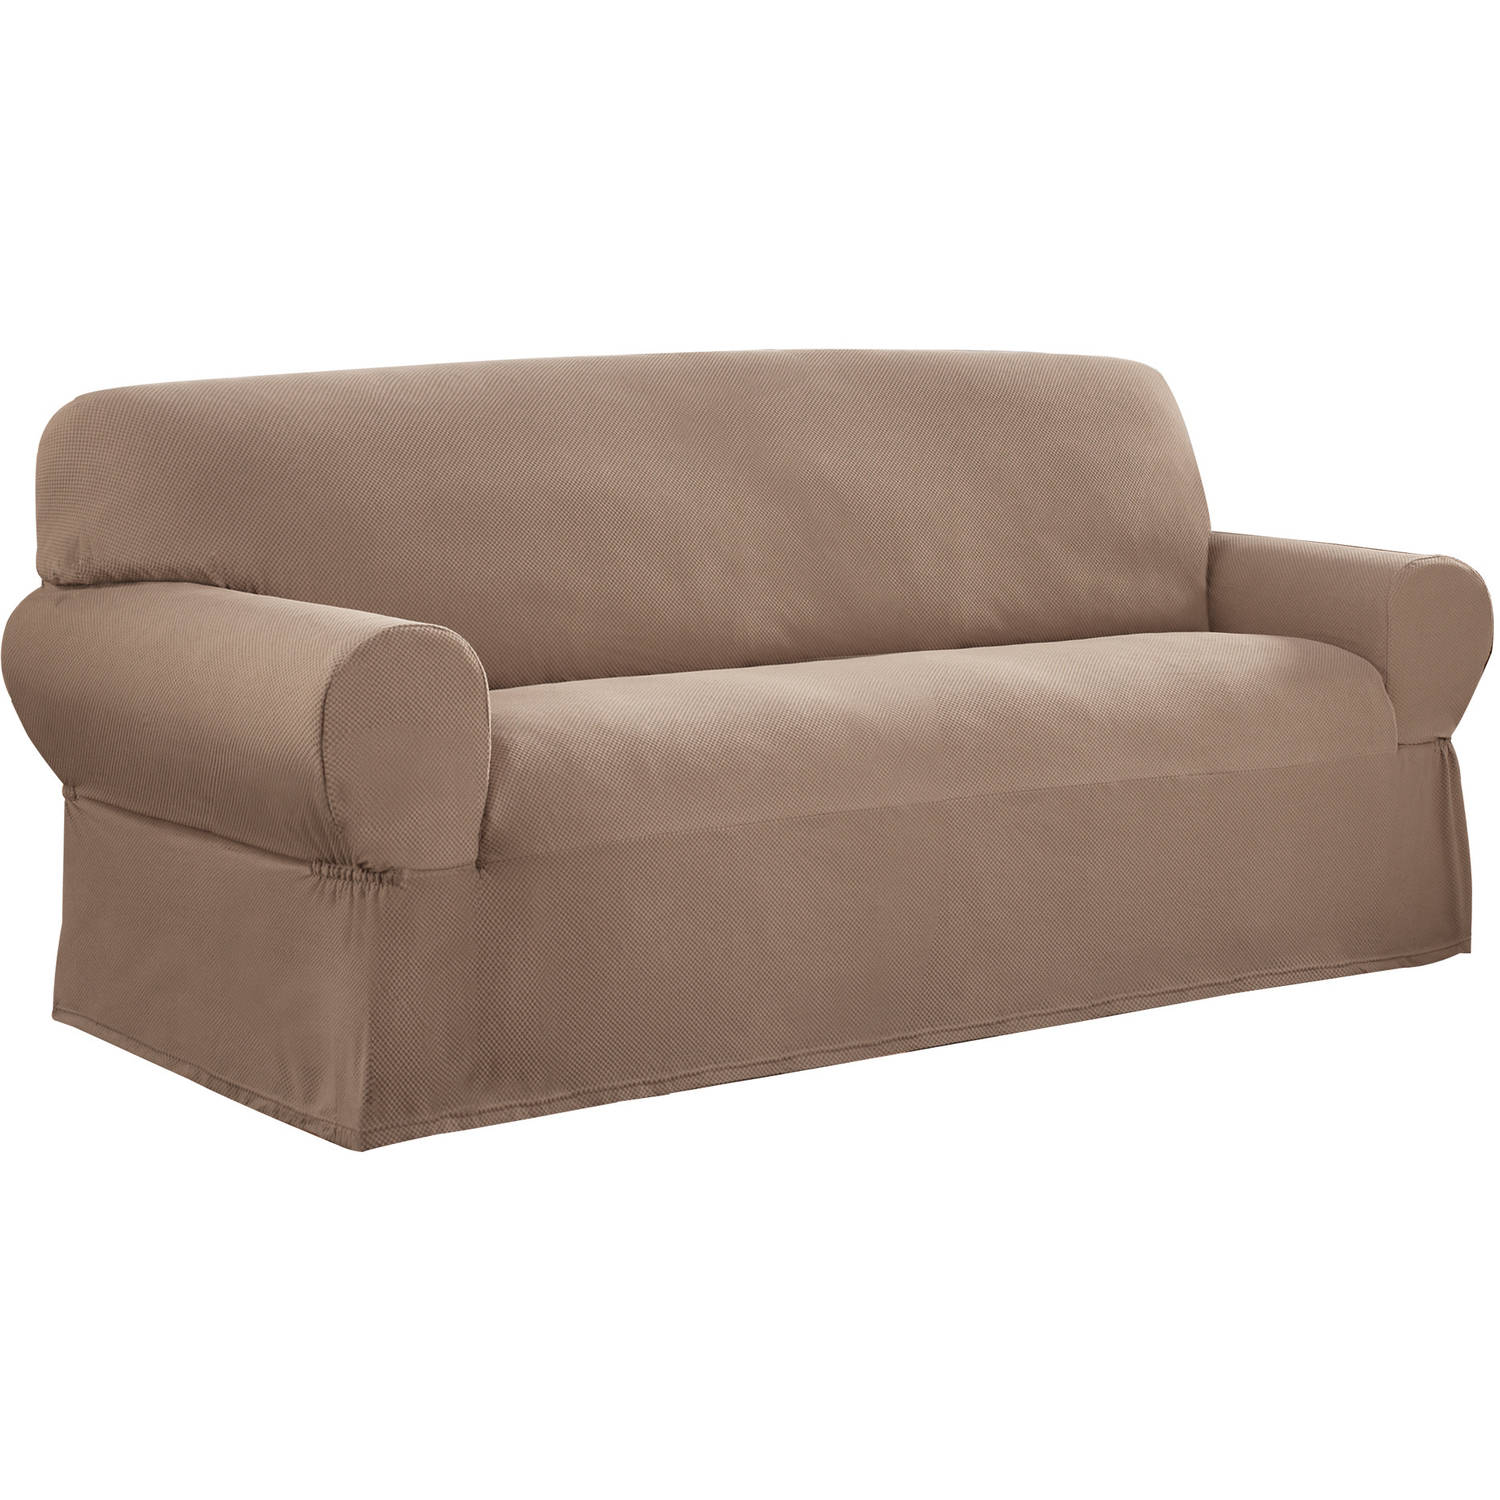 Mainstays 1 Piece Stretch Fabric Sofa Slipcover Walmart